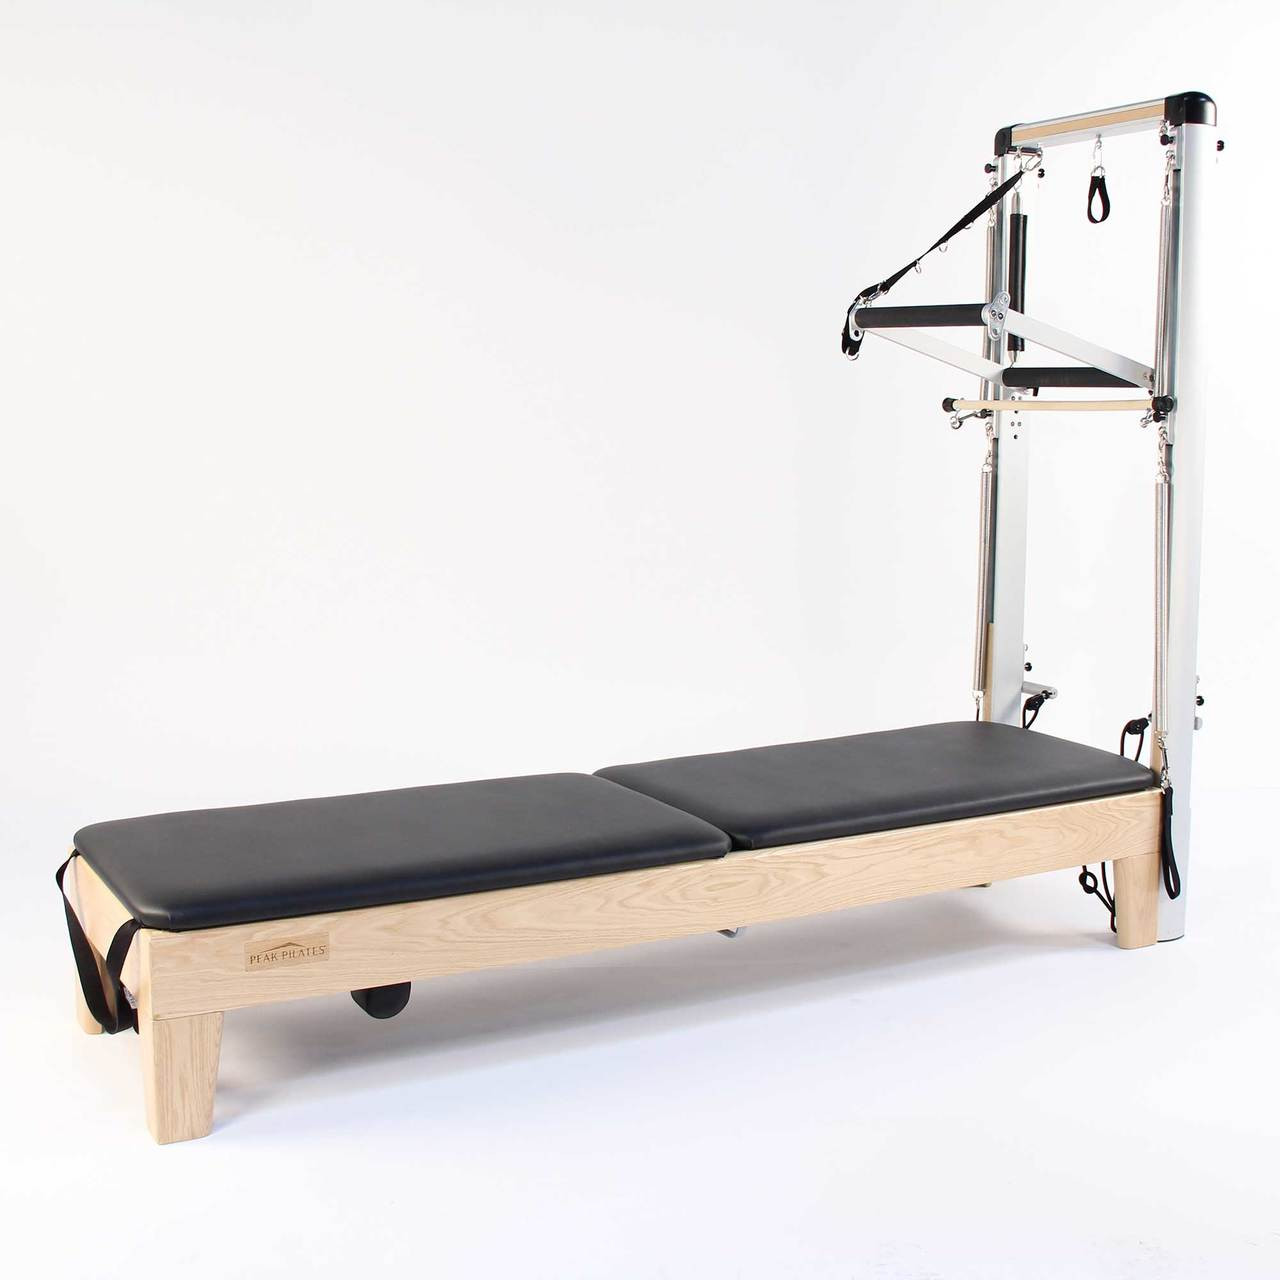 4 mat review system 1 Power systems can help by providing the best in yoga and pilates mats, yoga  chairs, pilates  all-purpose, fitness / pilates mats offers 1/8 padded surface  and.